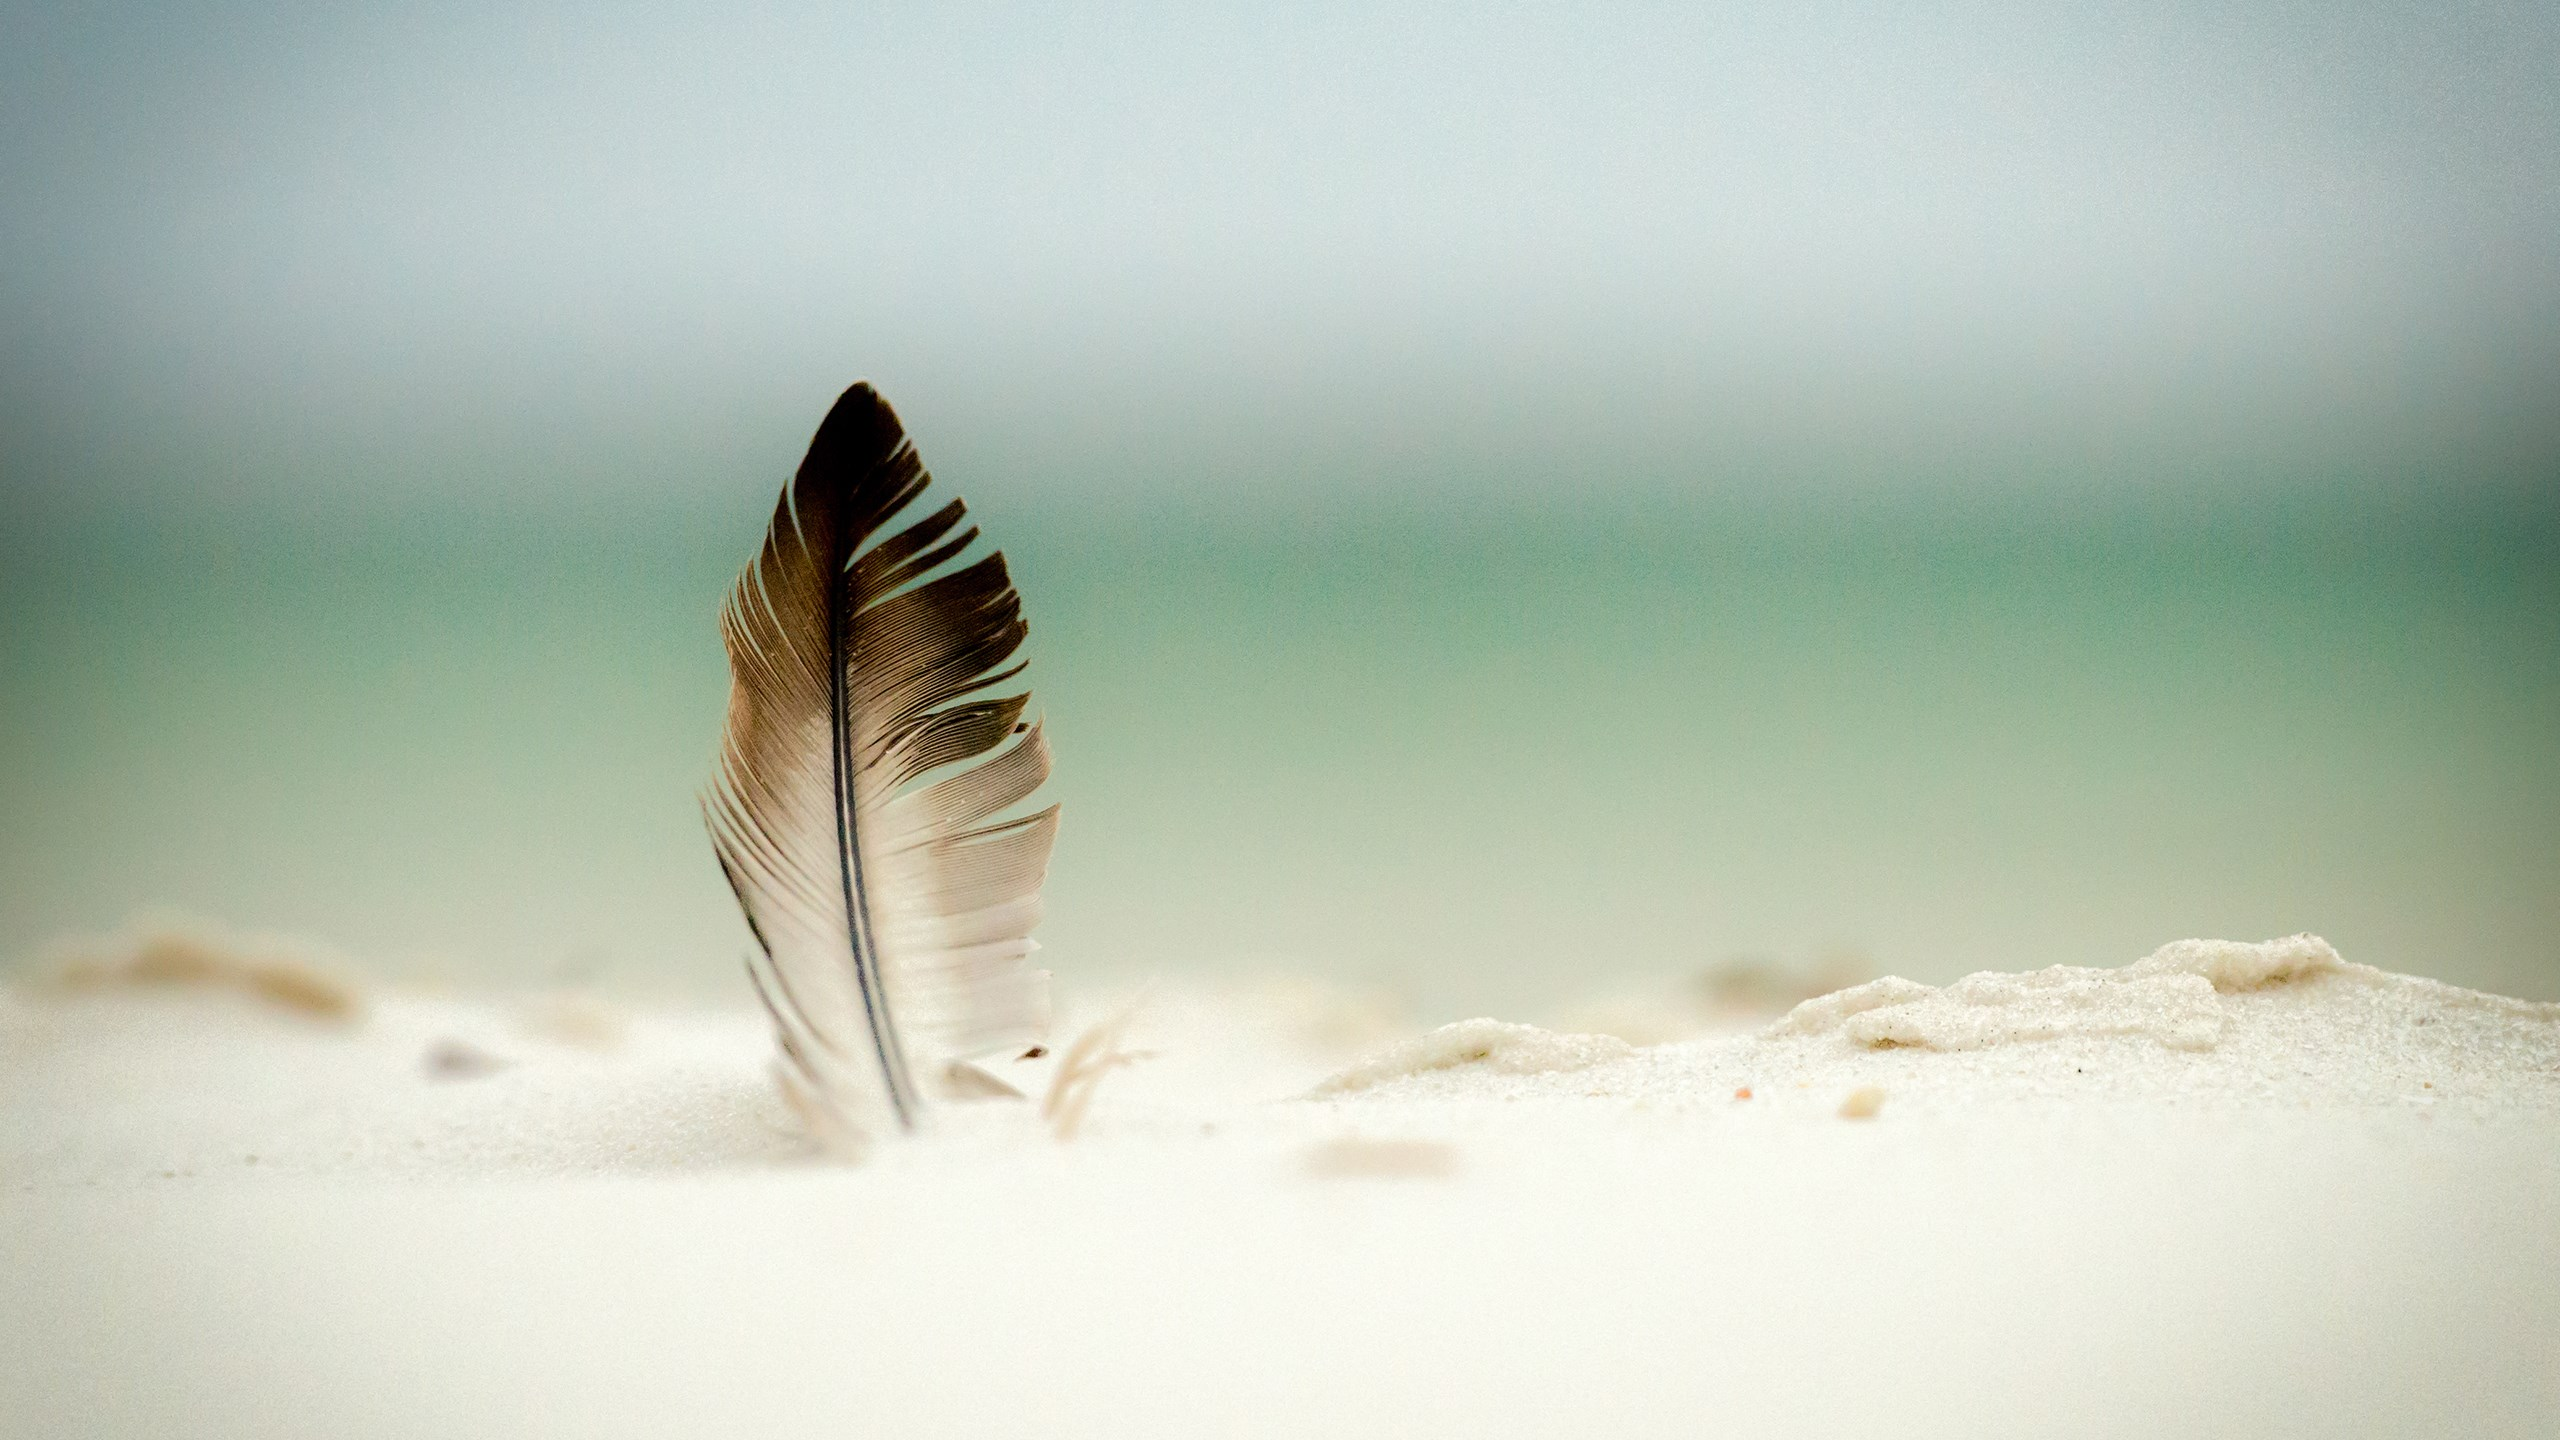 beye_66869952-feather-wallpapers.jpg